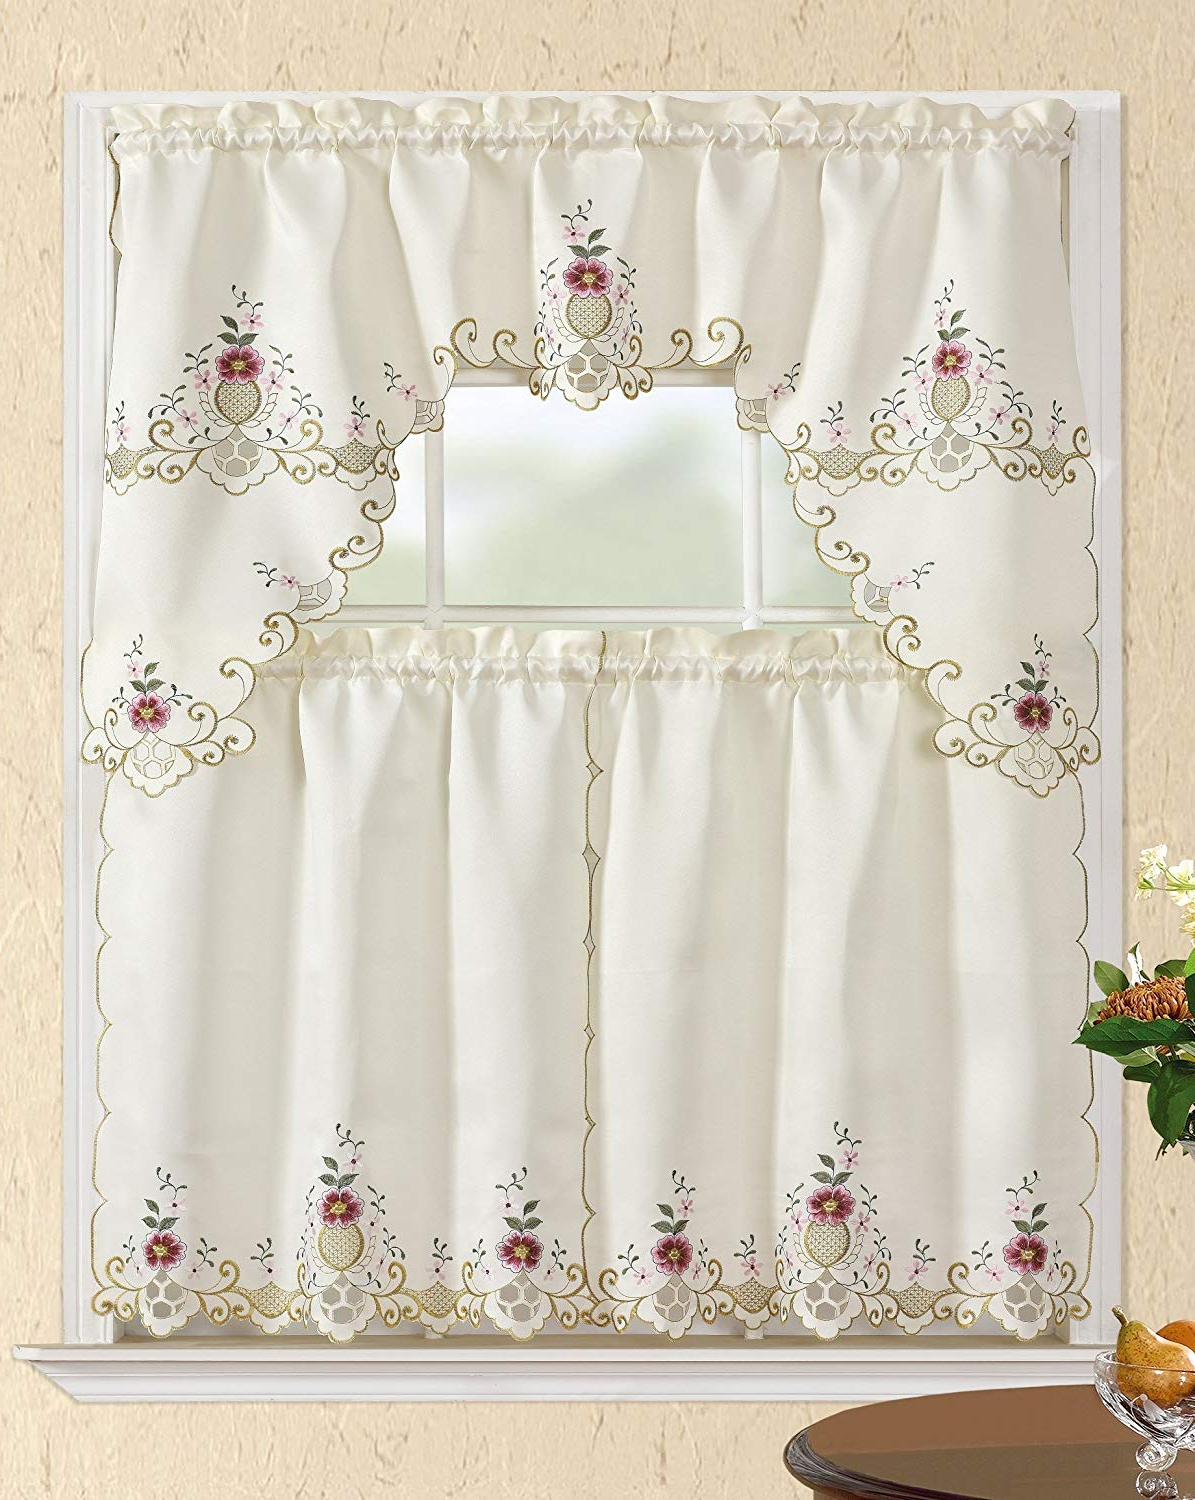 Amazon : All American Collection New 3pc Attached With Well Known Kitchen Burgundy/white Curtain Sets (View 17 of 20)